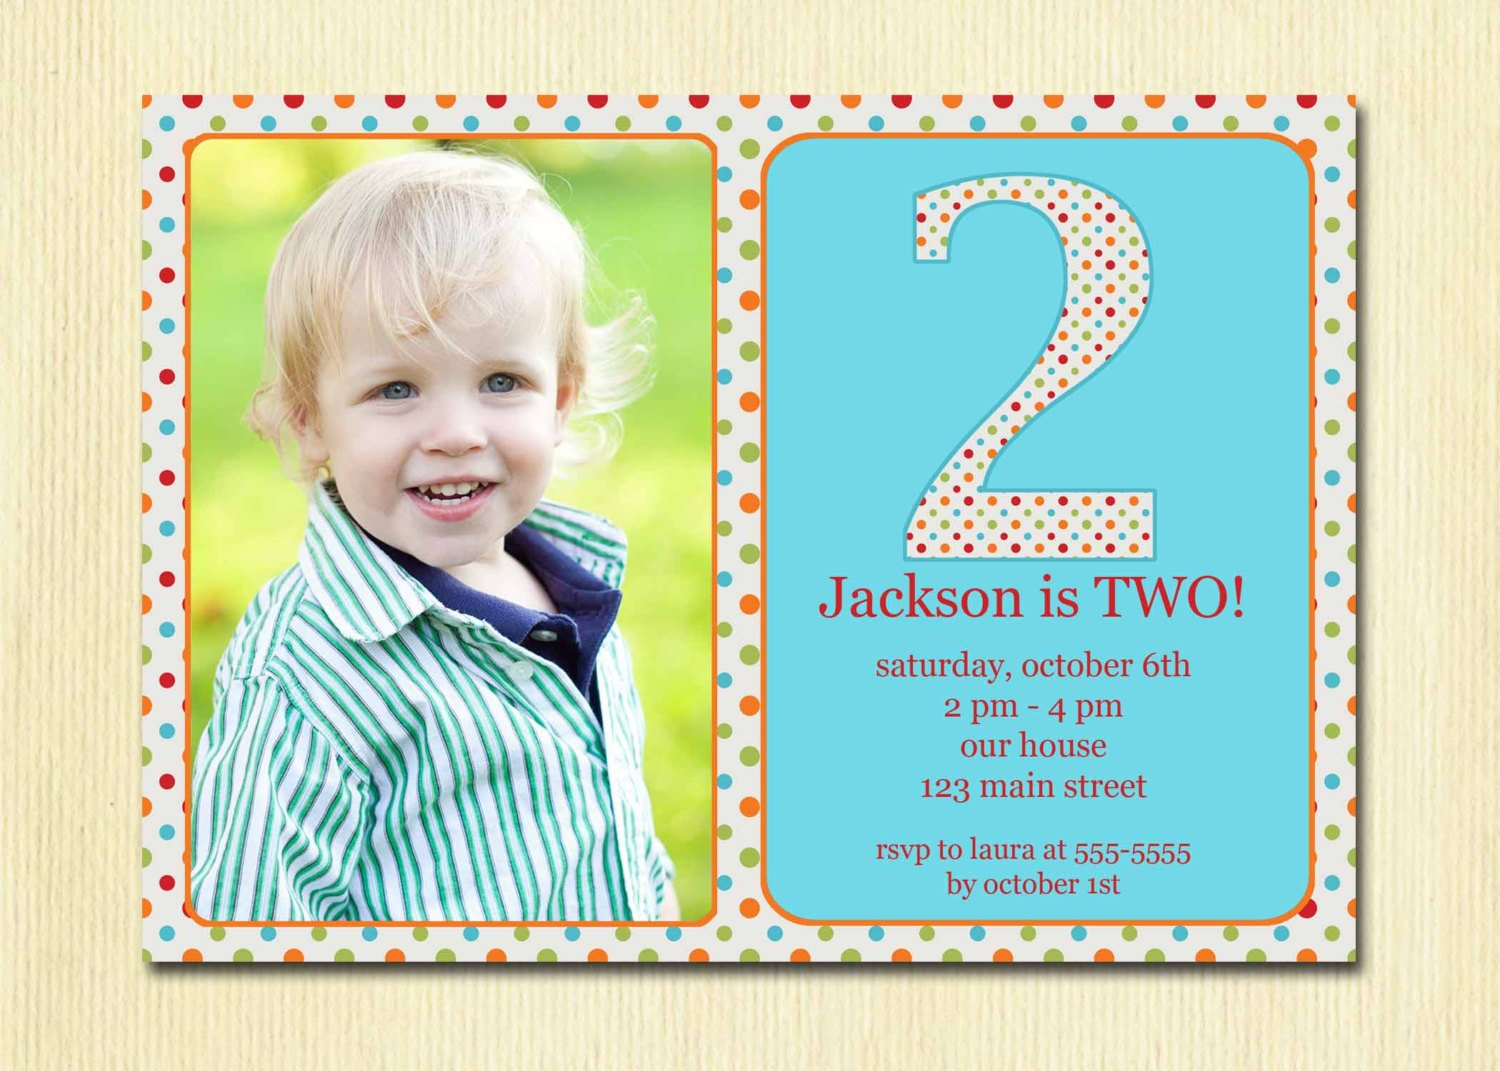 Year Old Birthday Invitations Templates Drevio Invitations Design - Birthday invitation templates for 1 year old